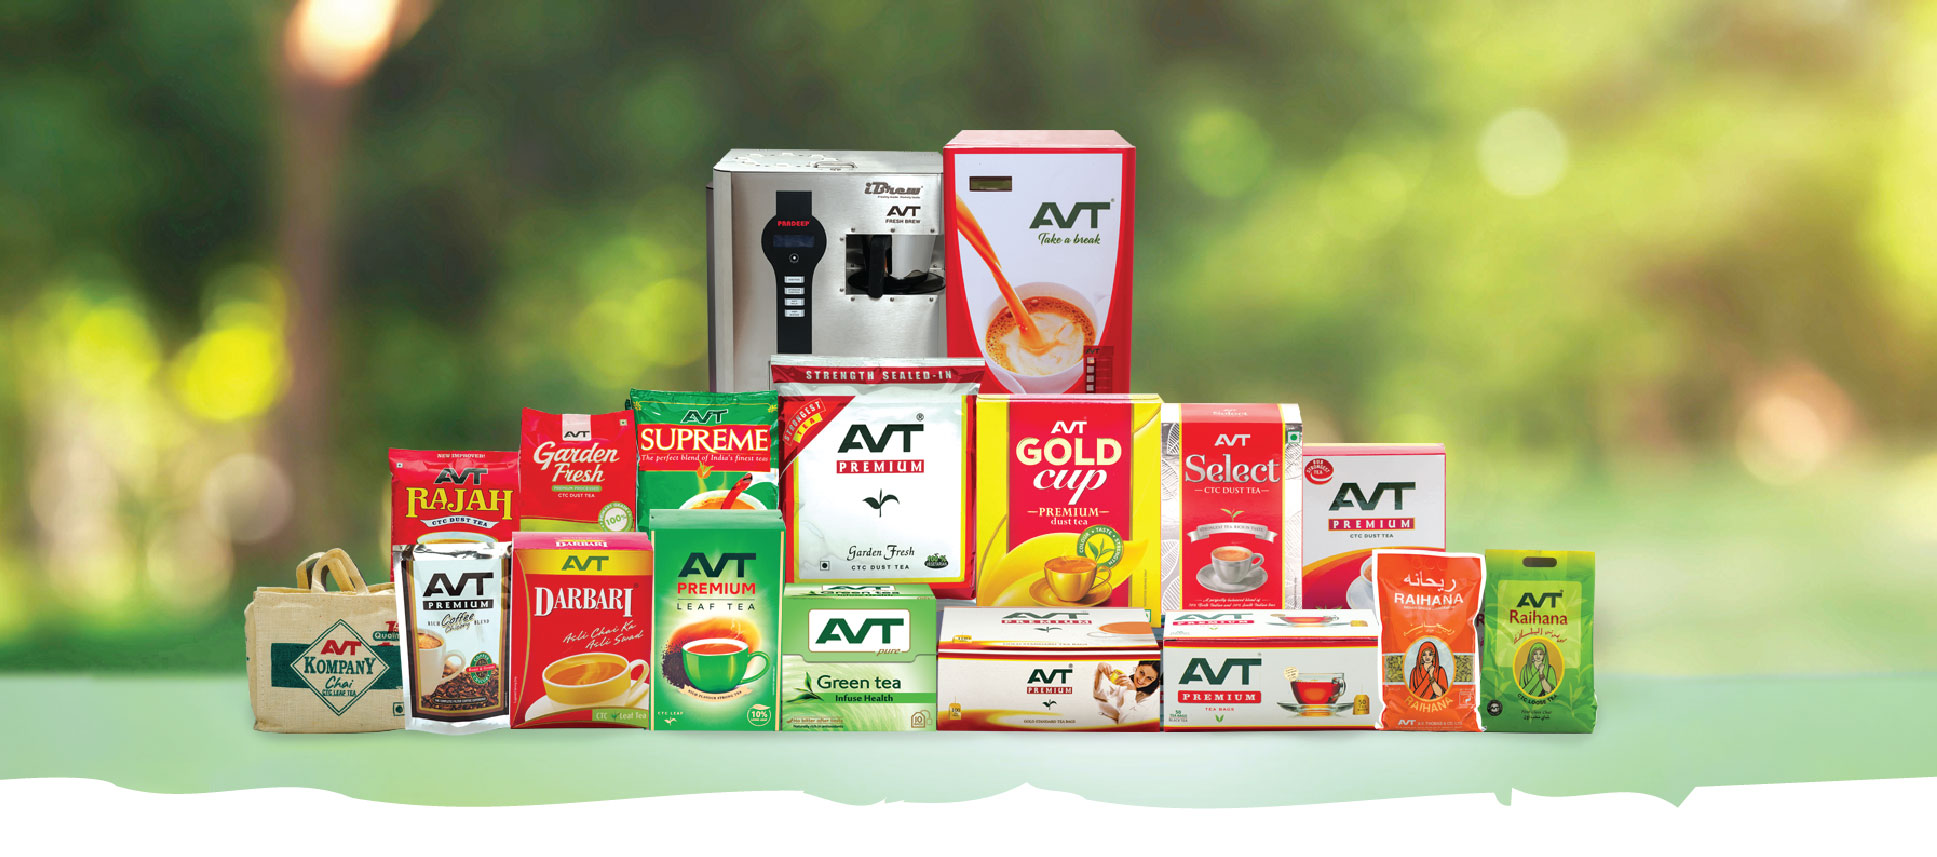 AVT Products | Tea, Coffee, Spices, Vending Machines | AVT